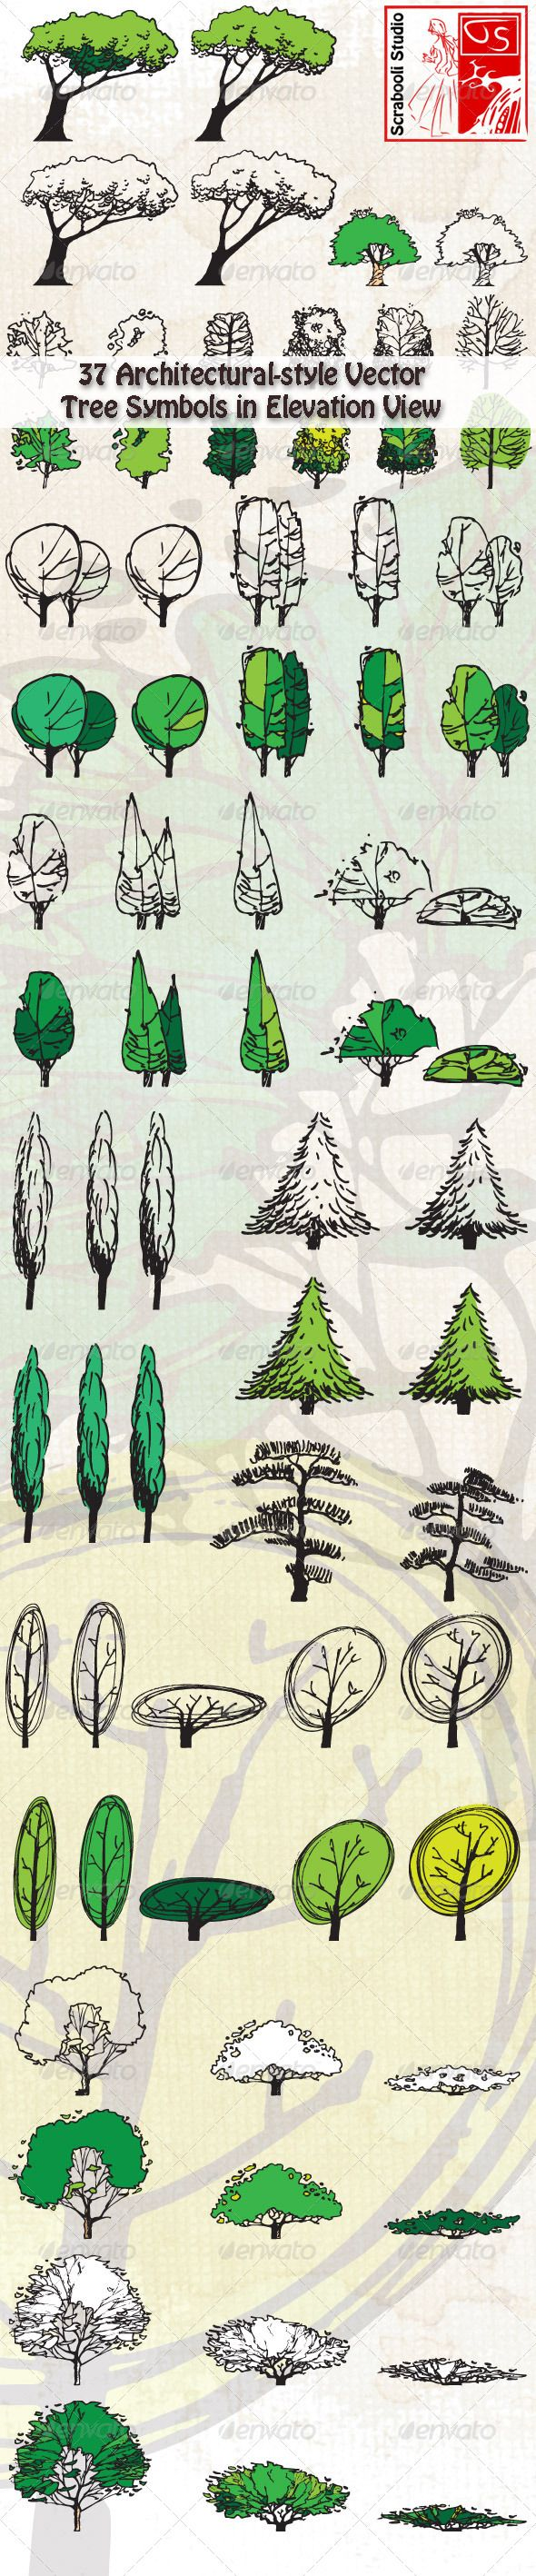 37 Vector Trees in Elevation View